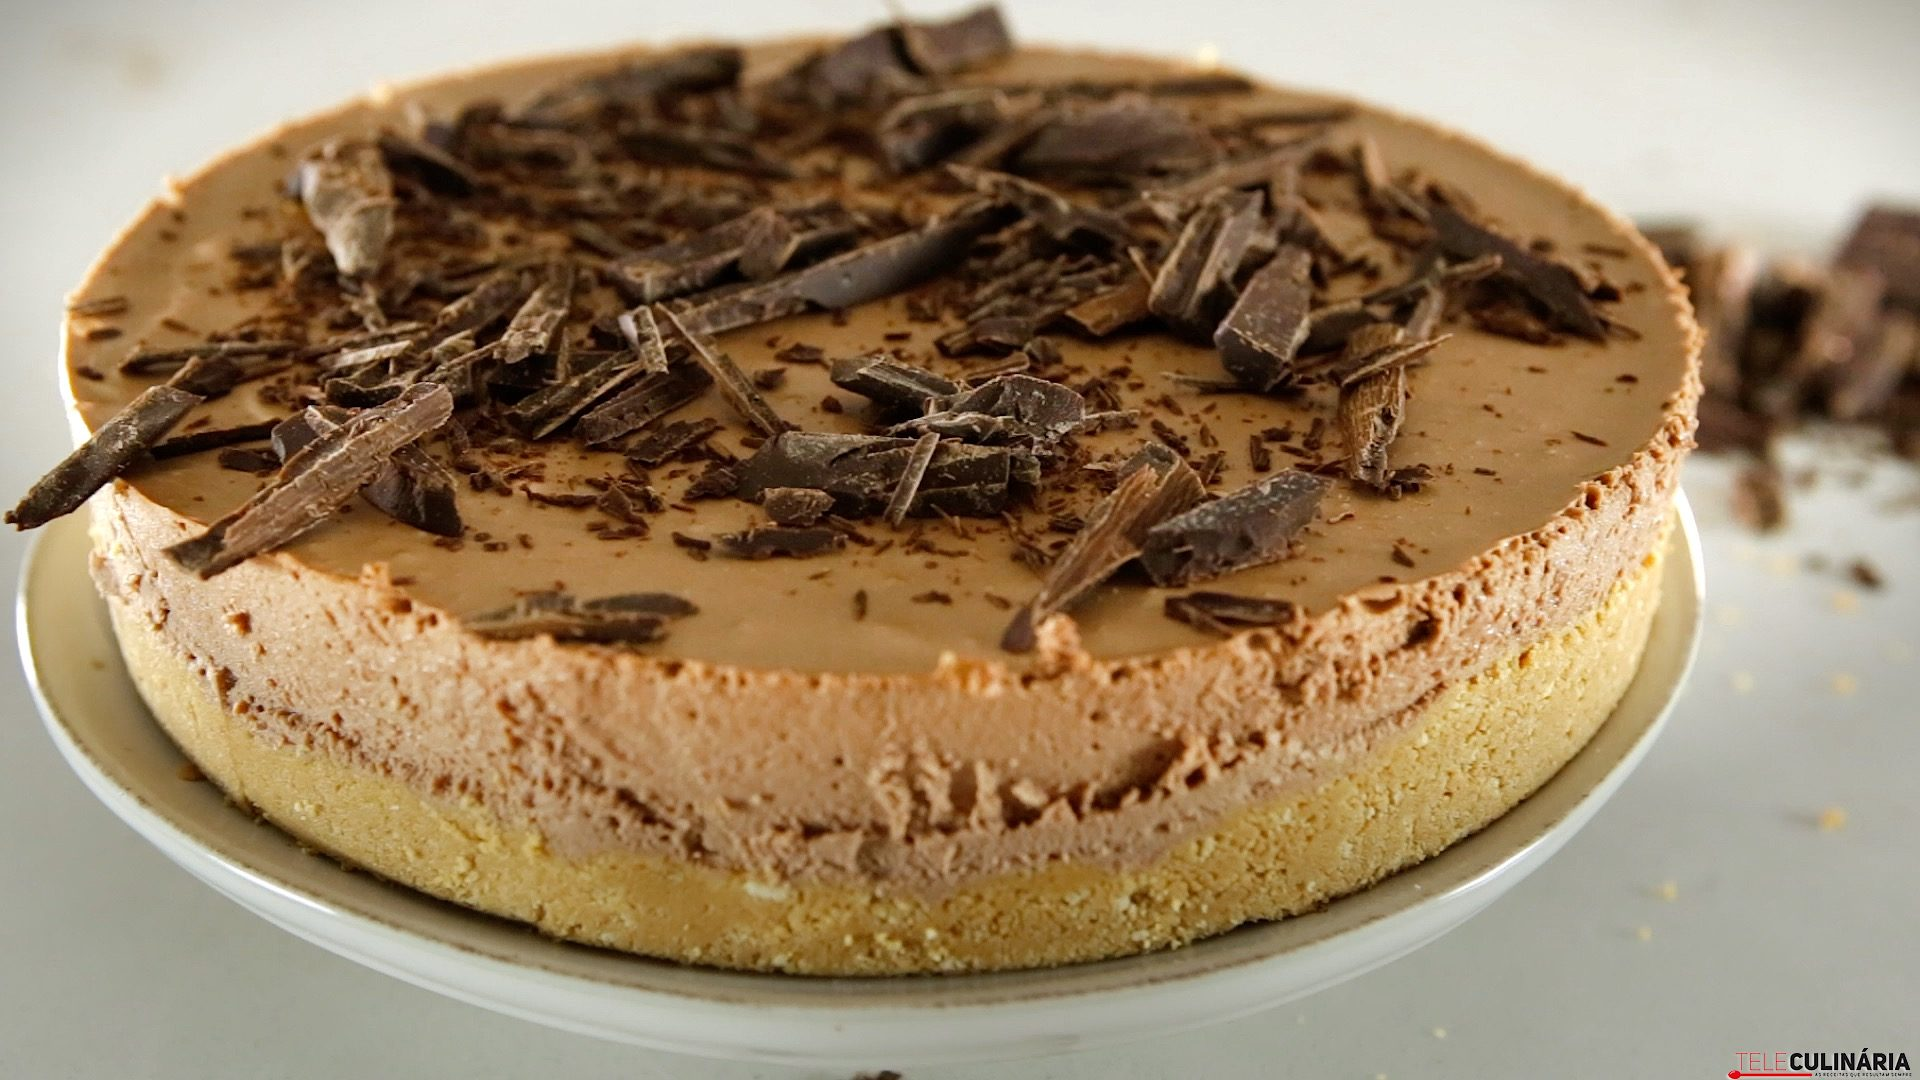 cheesecake de chocolate com manteiga de amendoim